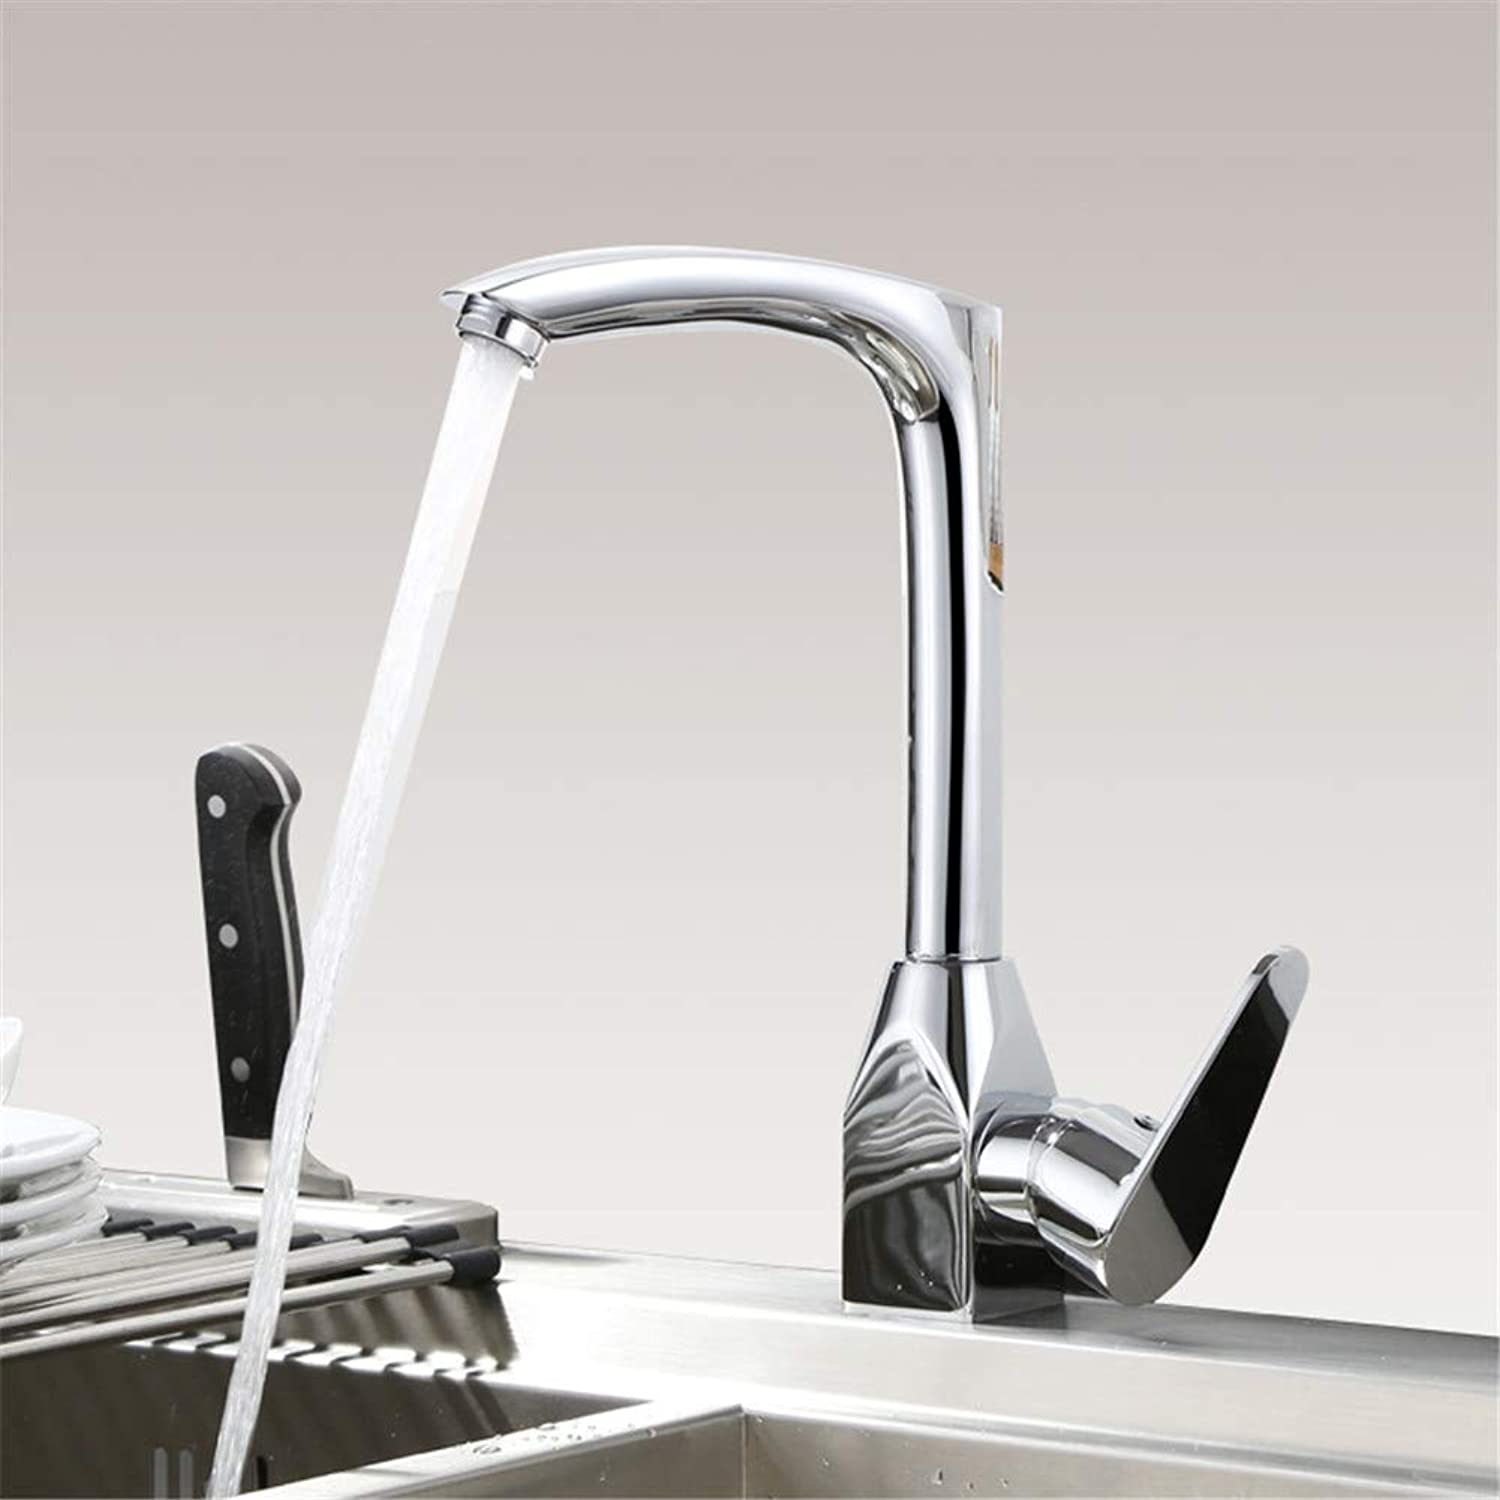 JIANGYE Single Lever Kitchen Sink Basin Mixer taps Modern Chrome High arc Single handle single hole kitchen faucet hot and cold water Mixers brass Lead free